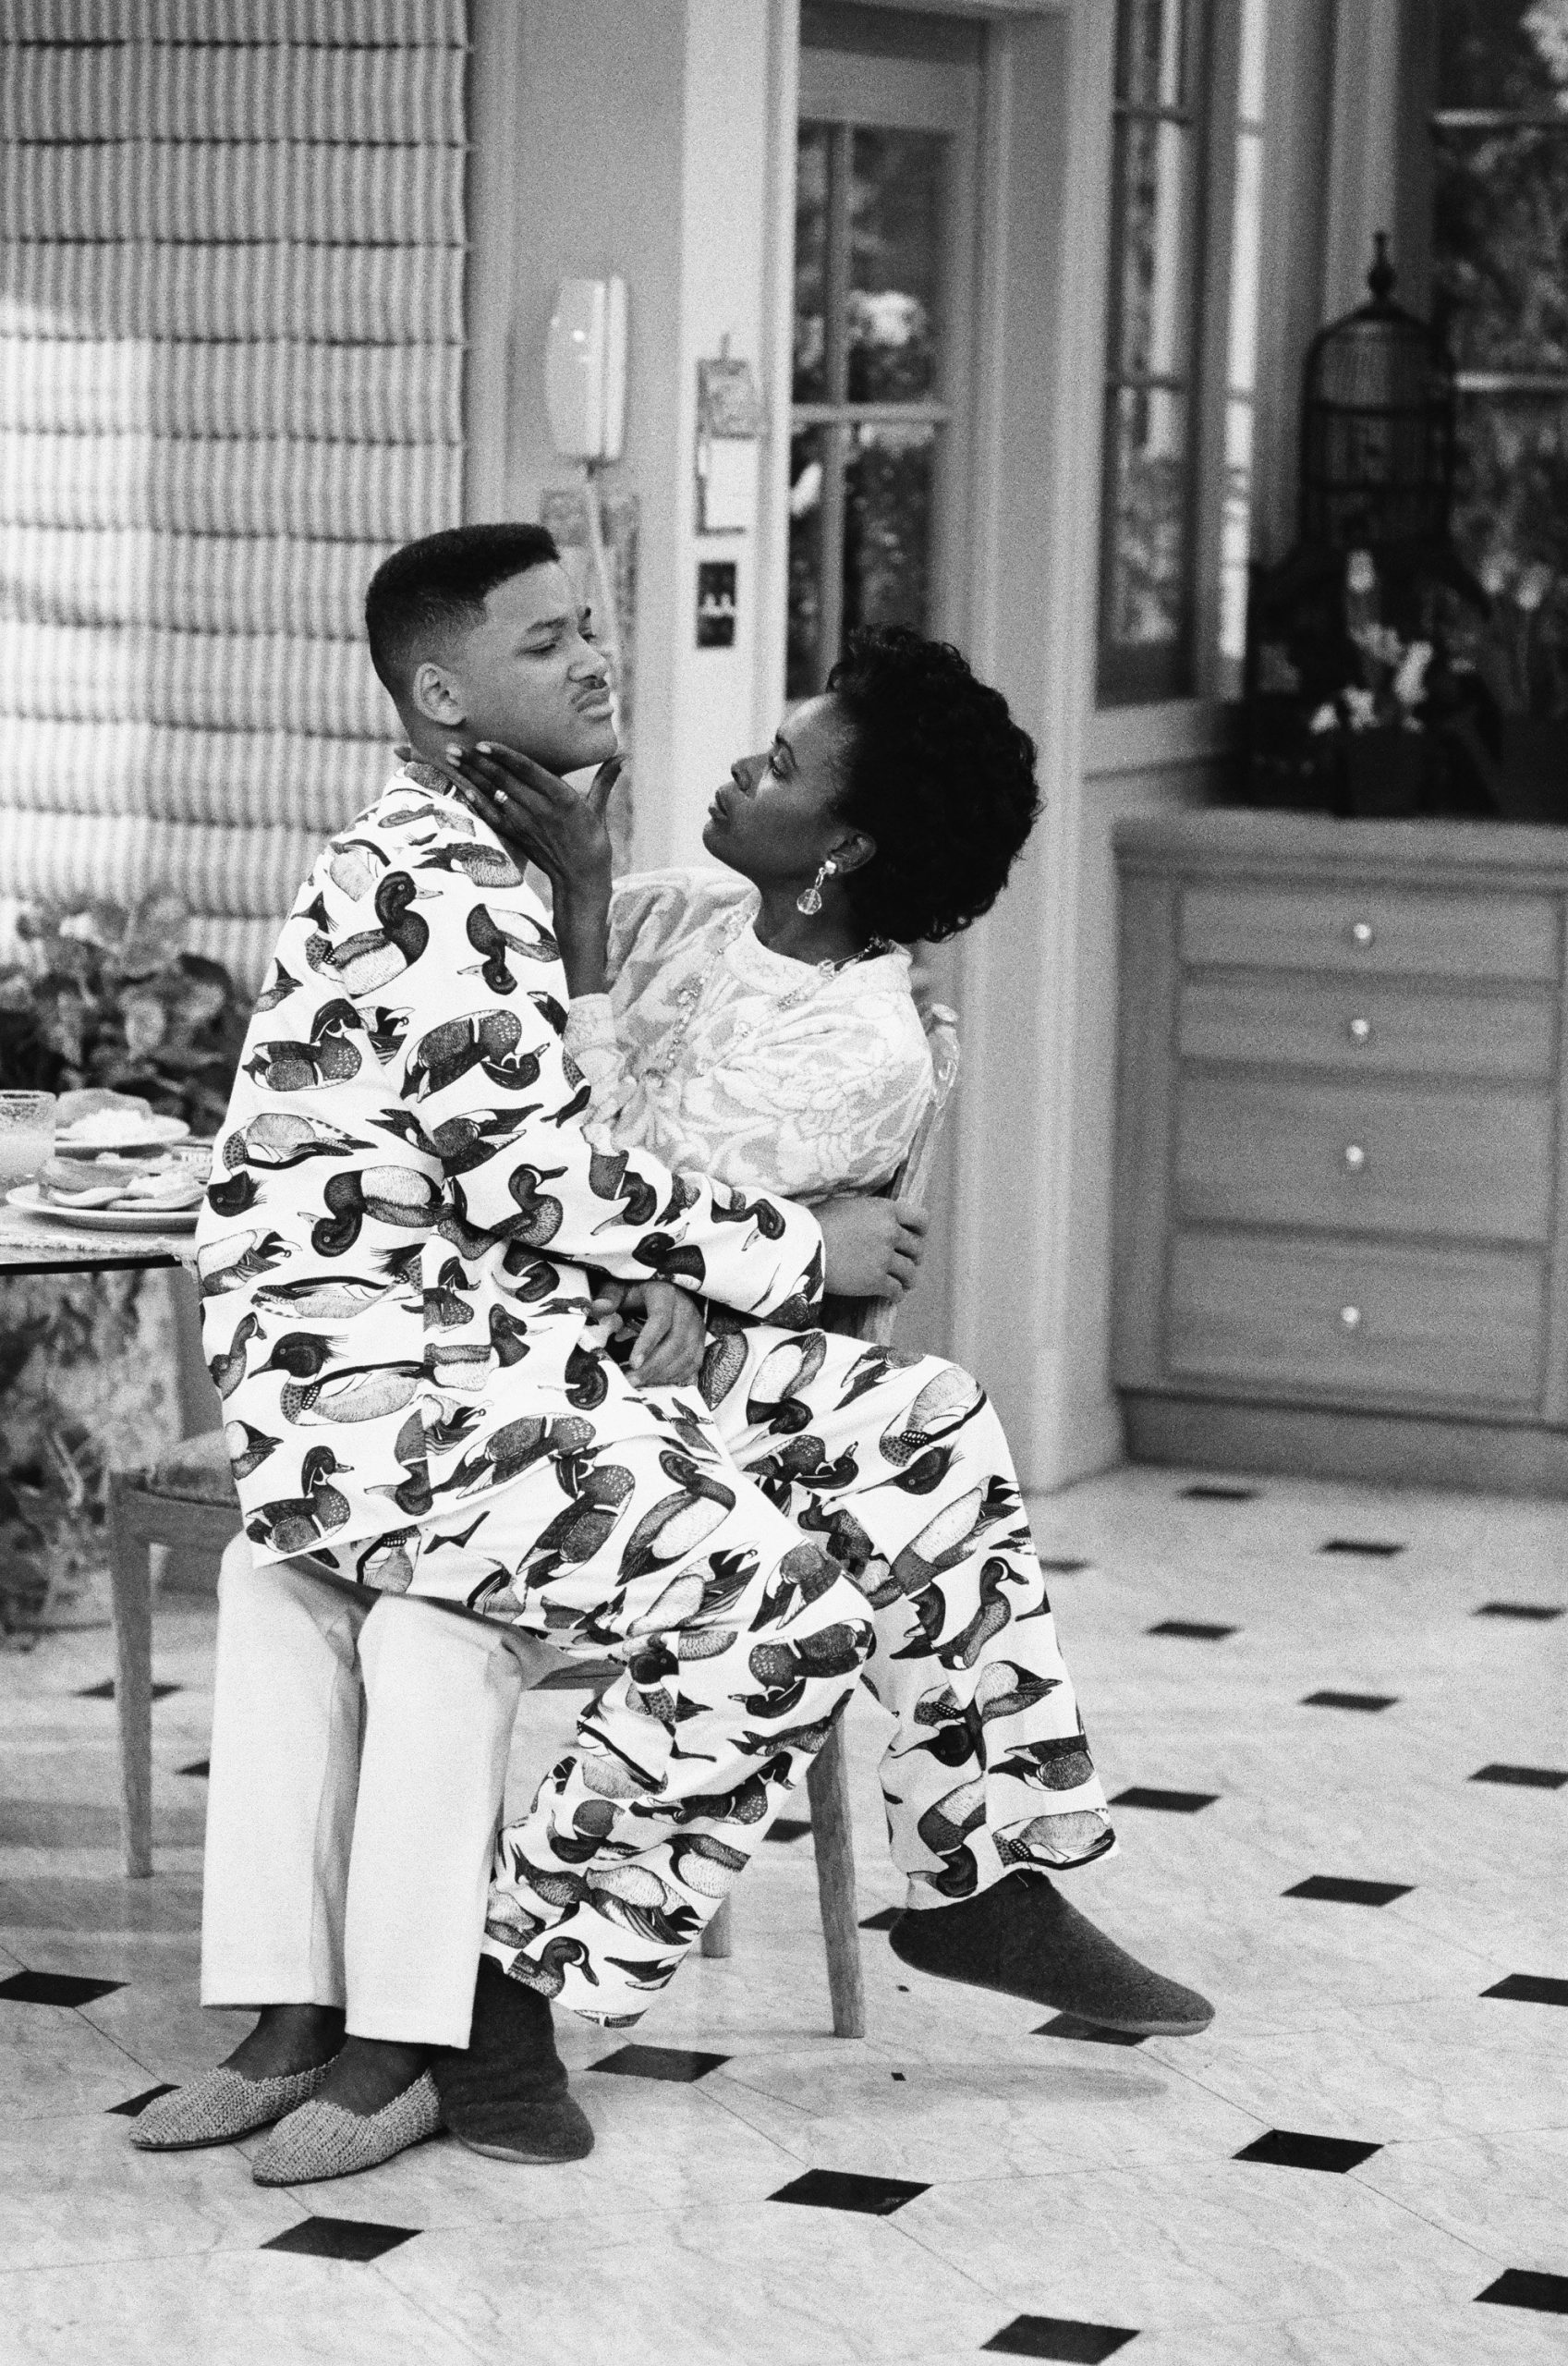 """THE FRESH PRINCE OF BEL-AIR -- """"Ill Will"""" Episode 18 -- Pictured: (l-r) Will Smith as William 'Will' Smith, Janet Hubert as Vivian Banks"""